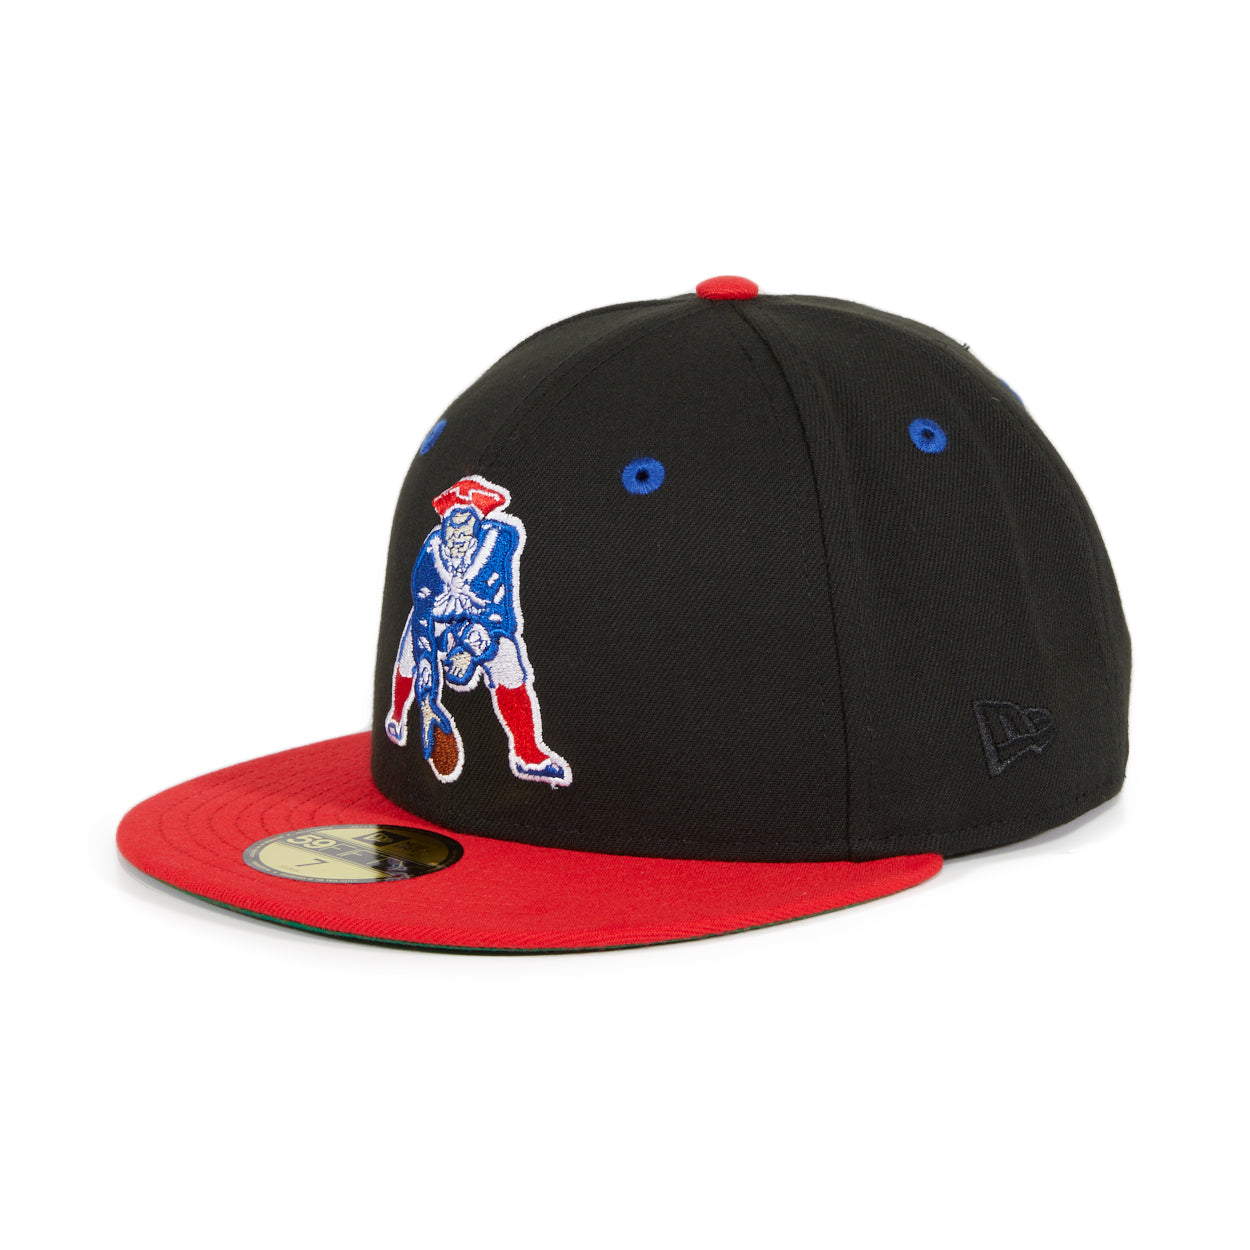 Exclusive New Era 59Fifty New England Patriots 1972 Hat - 2T Black, Royal